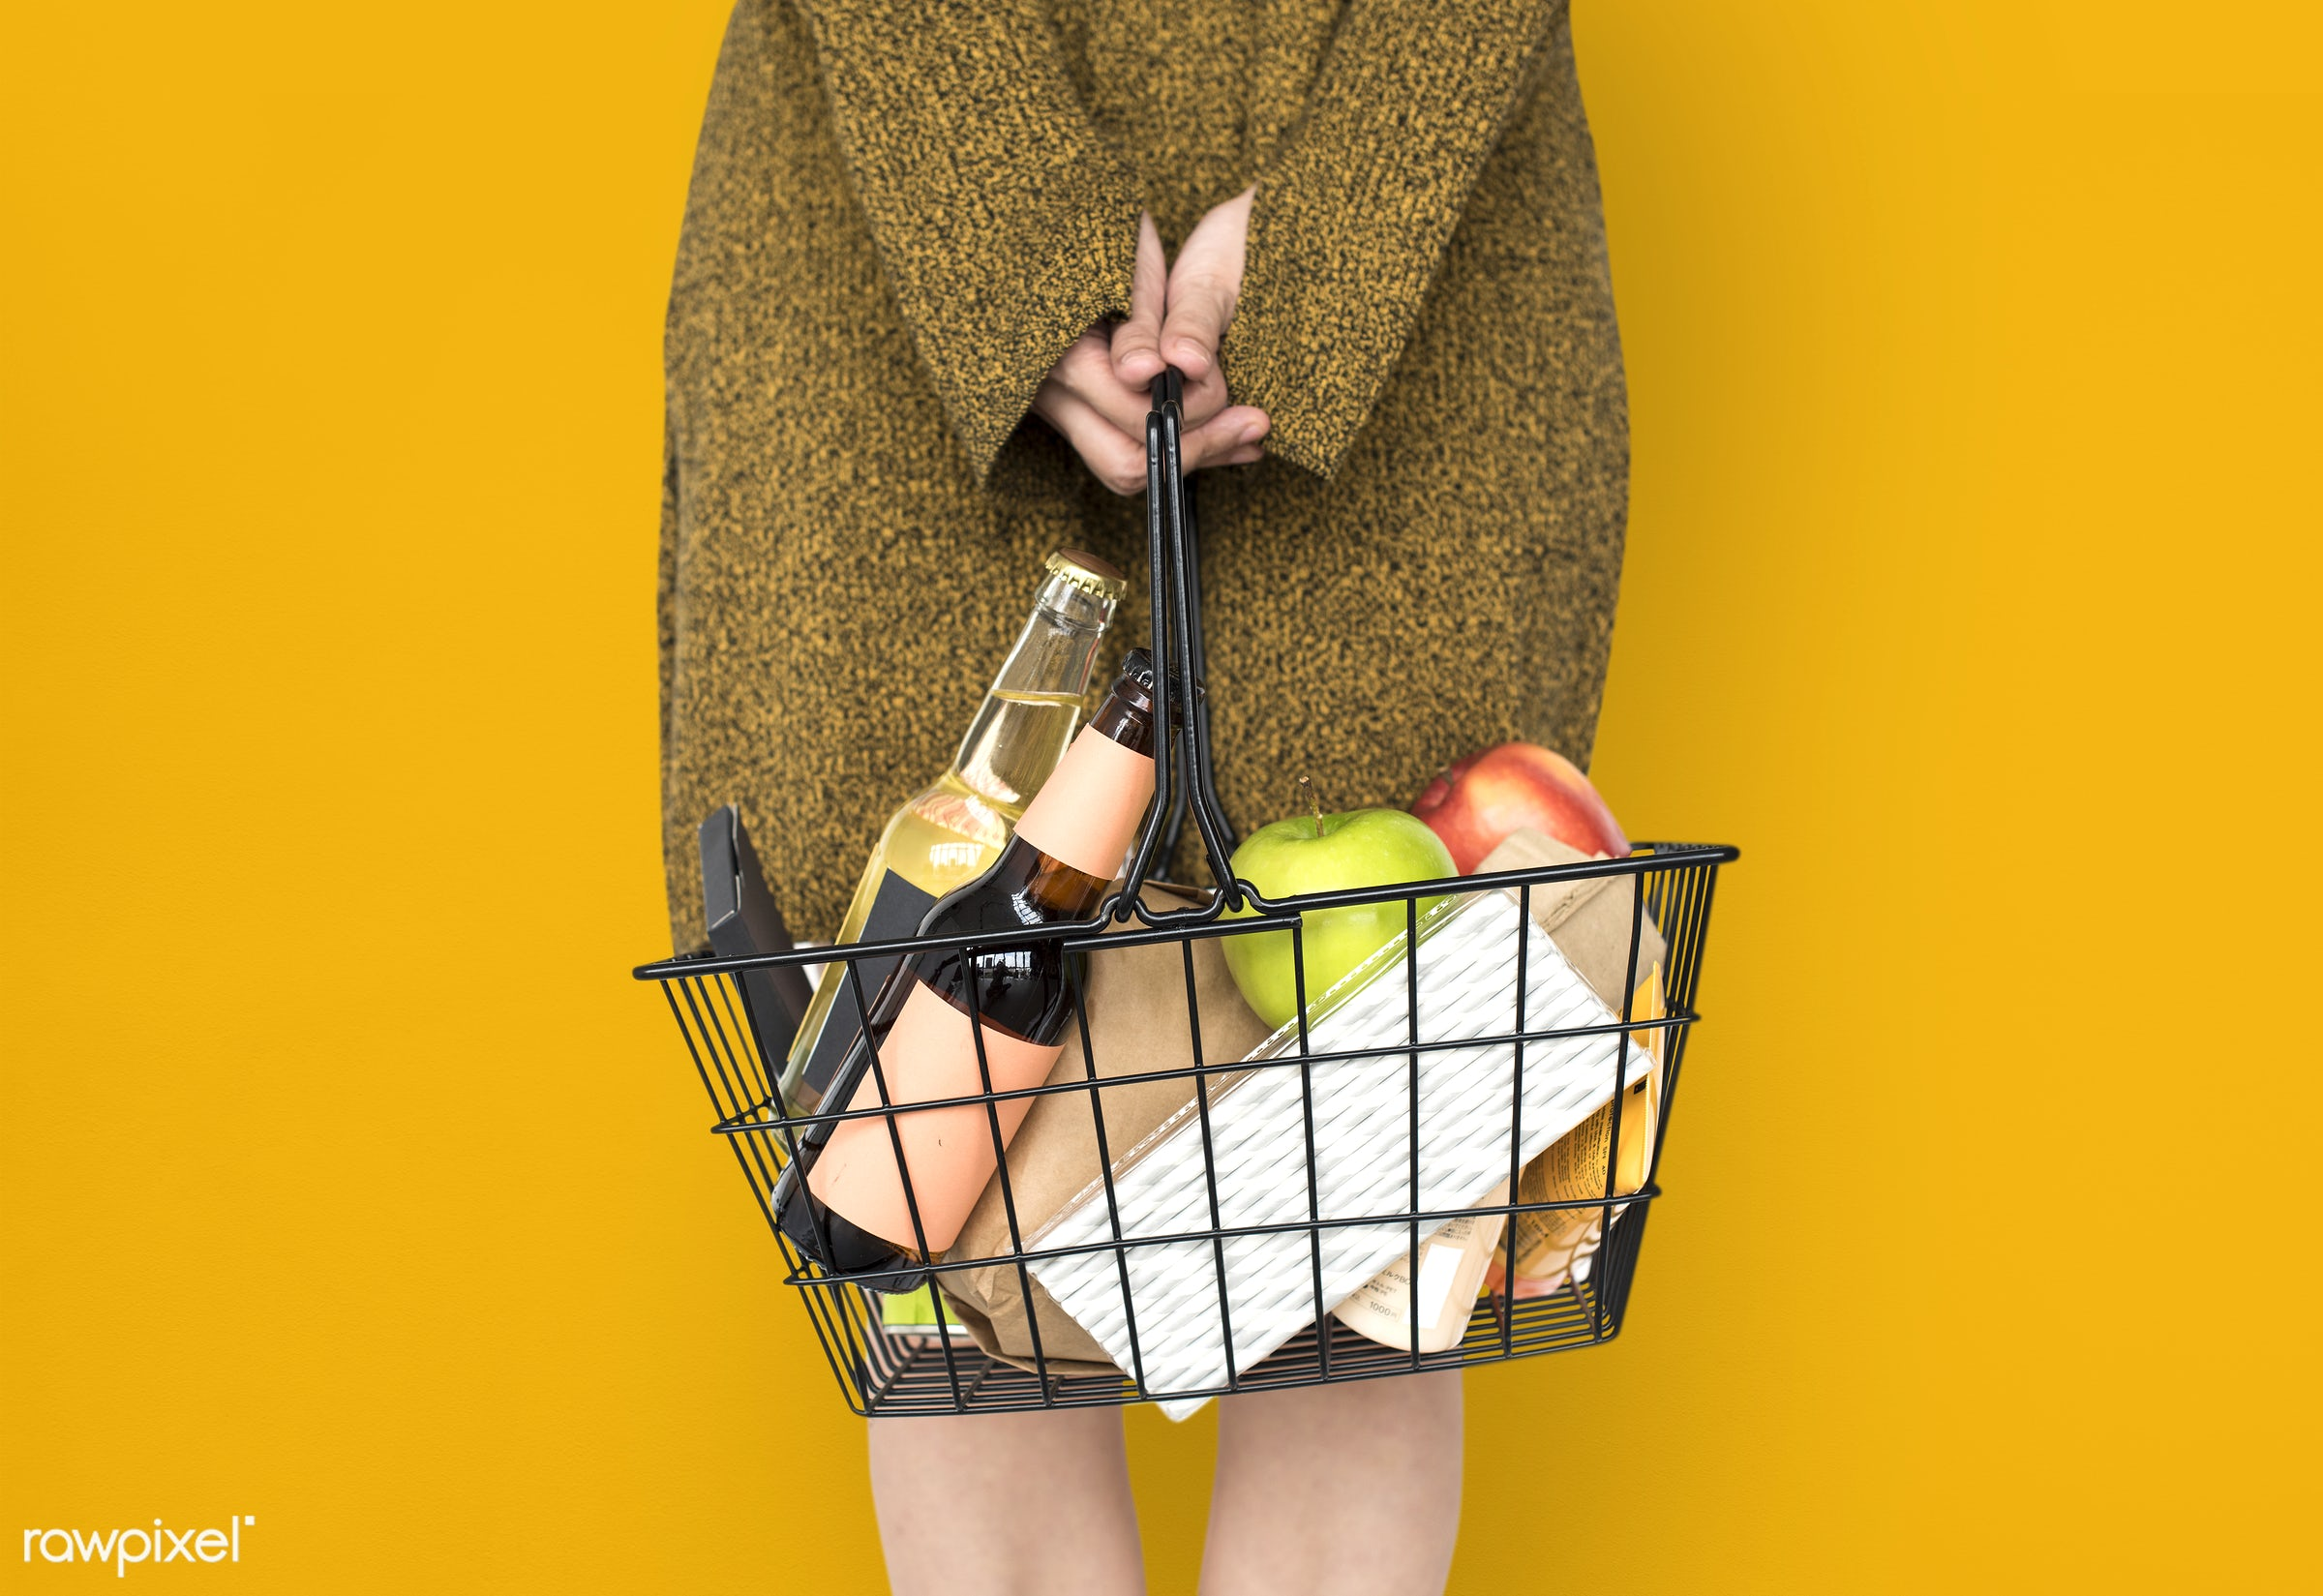 grocery, studio, person, goods, yellow, people, drinks, girl, carrying, solo, woman, casual, wine, isolated, fruit,...